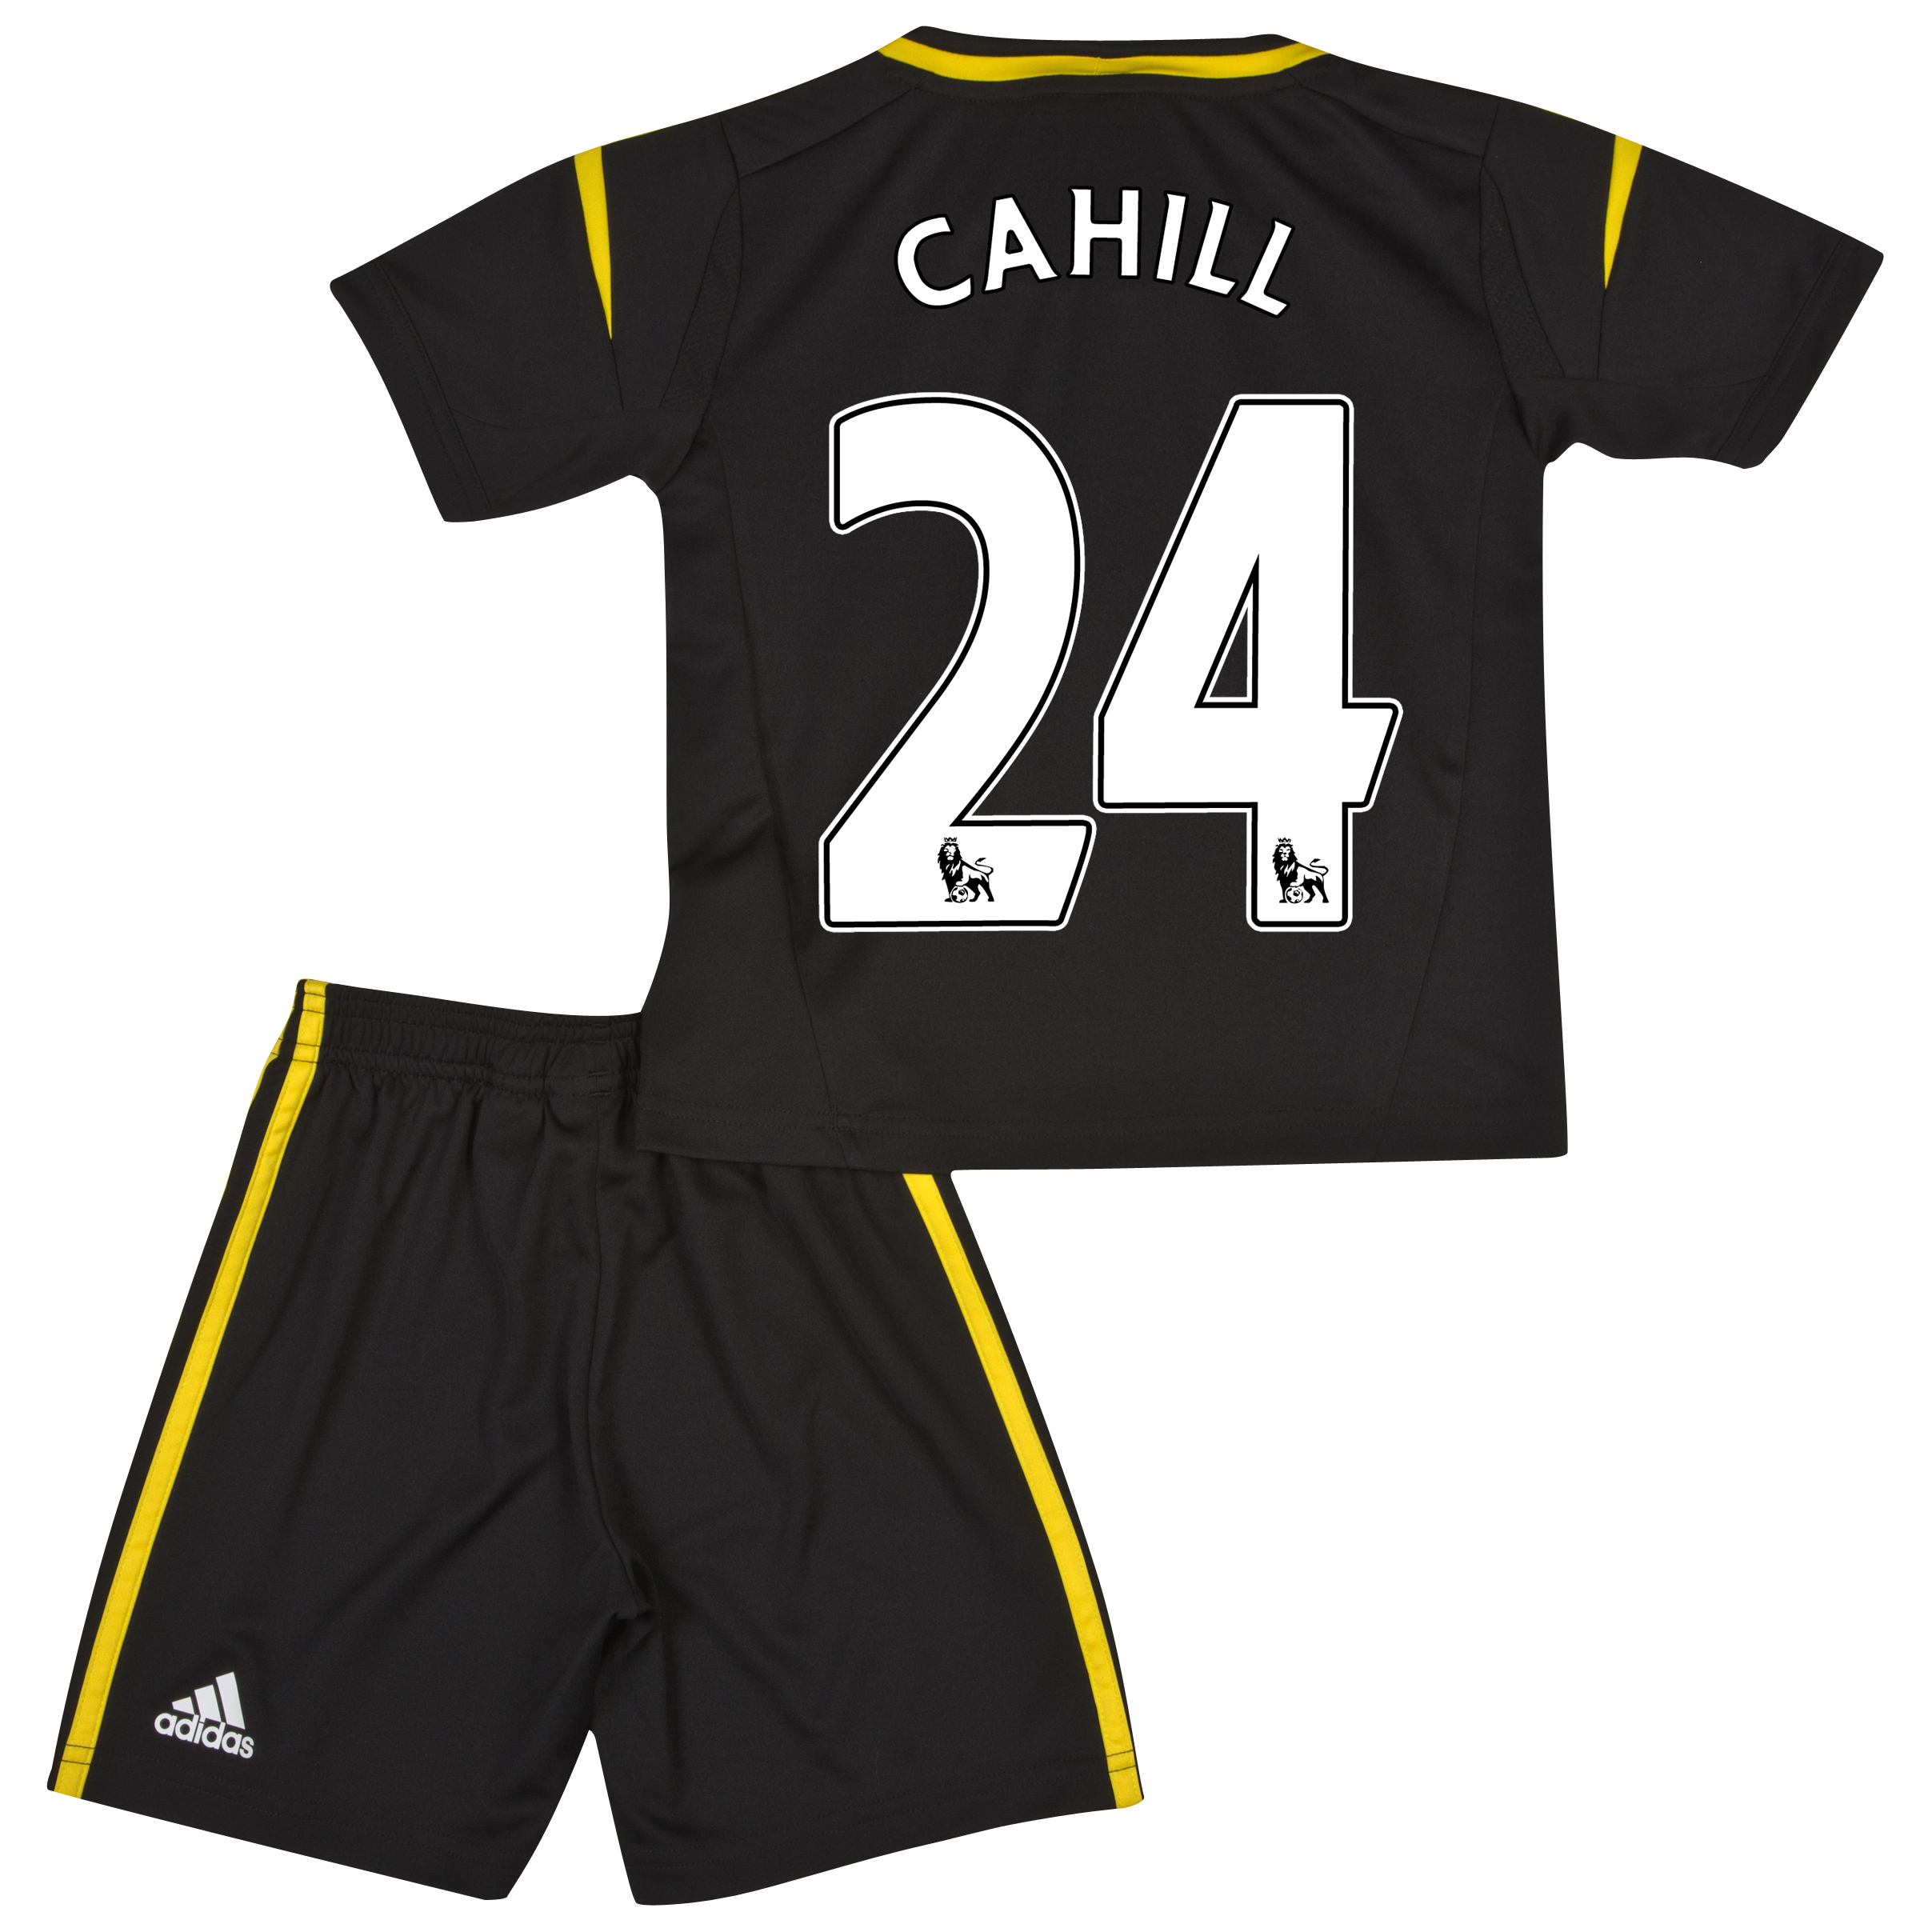 Chelsea Third Mini Kit 2012/13 with Cahill 24 printing